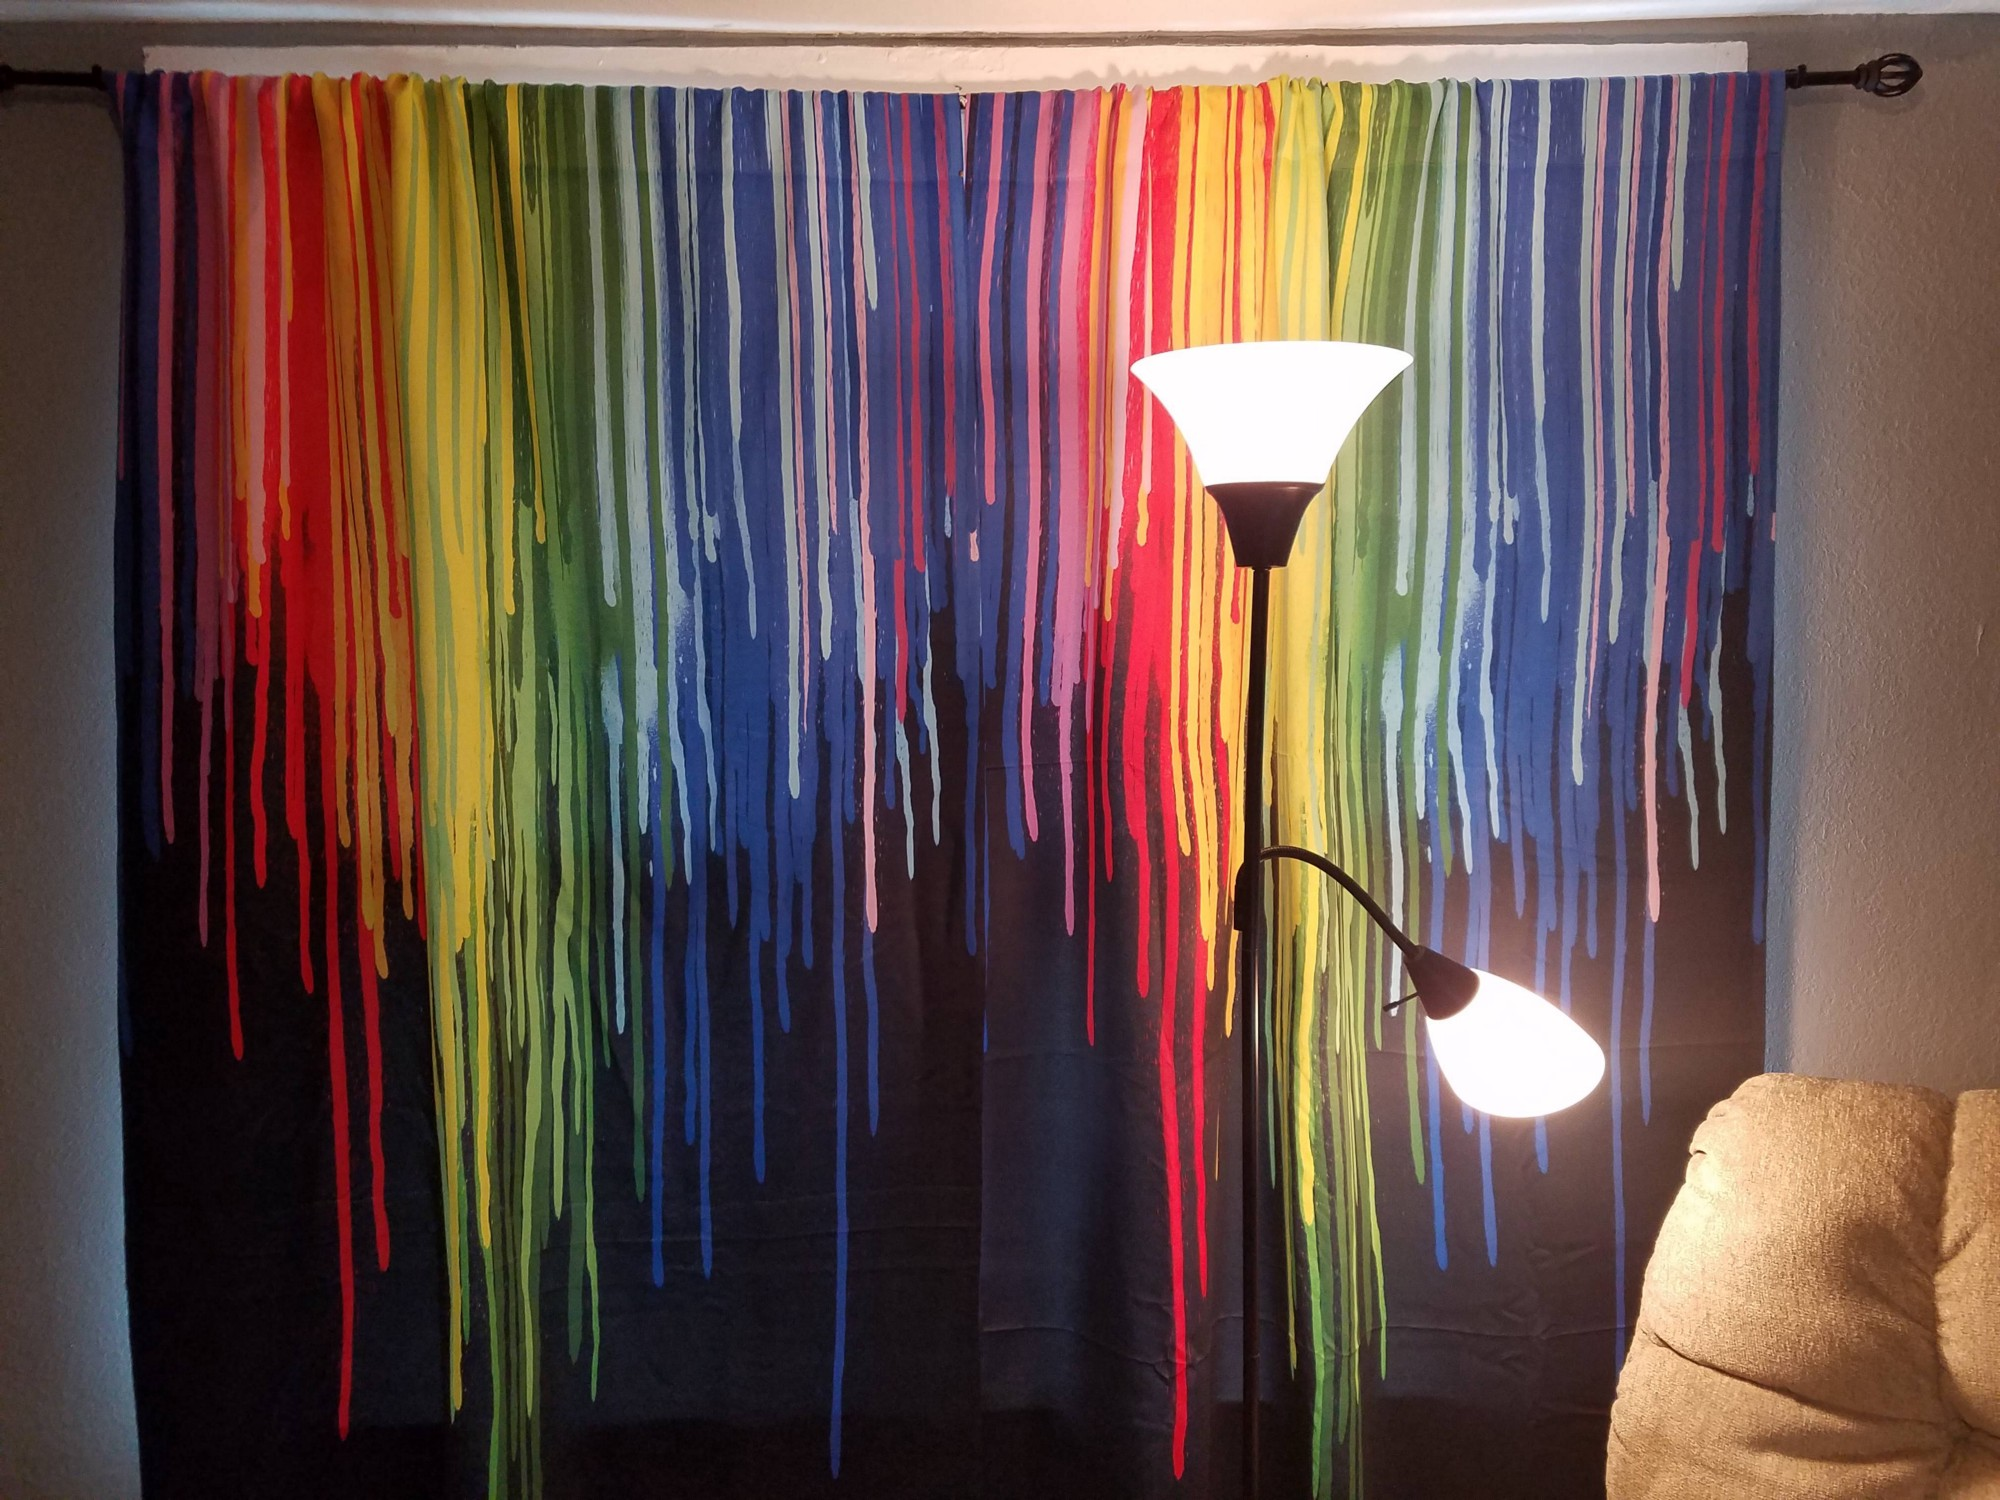 Black Curtains with rainbow colored paint effect. In front of the curtains, a light and an easy chair